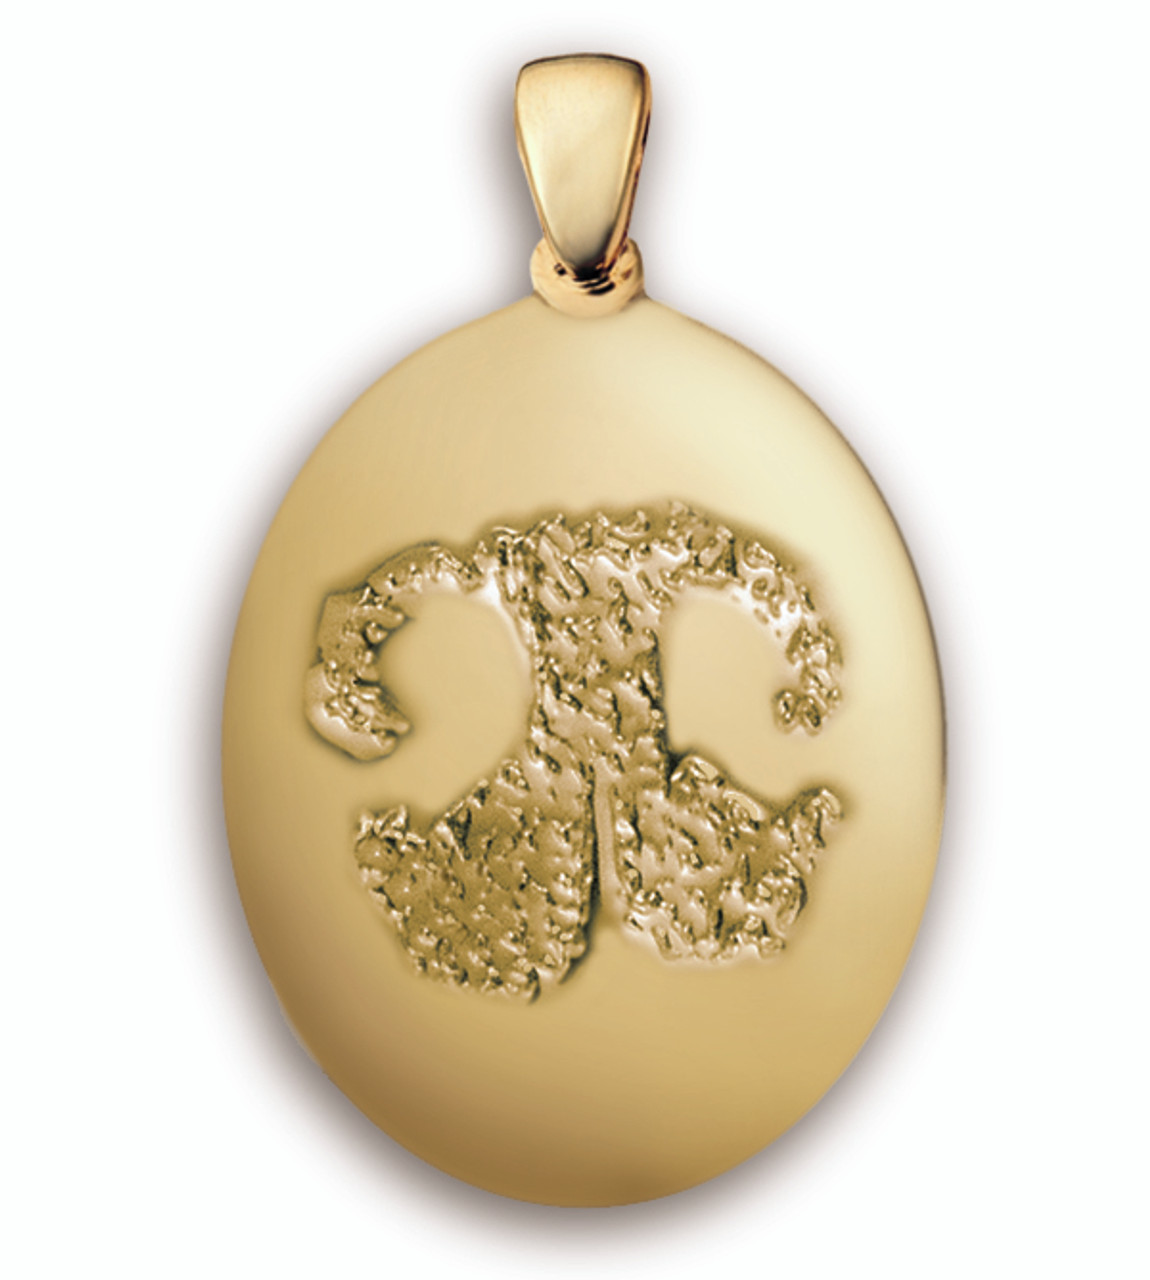 Grand Charm in Gold with Nose Print